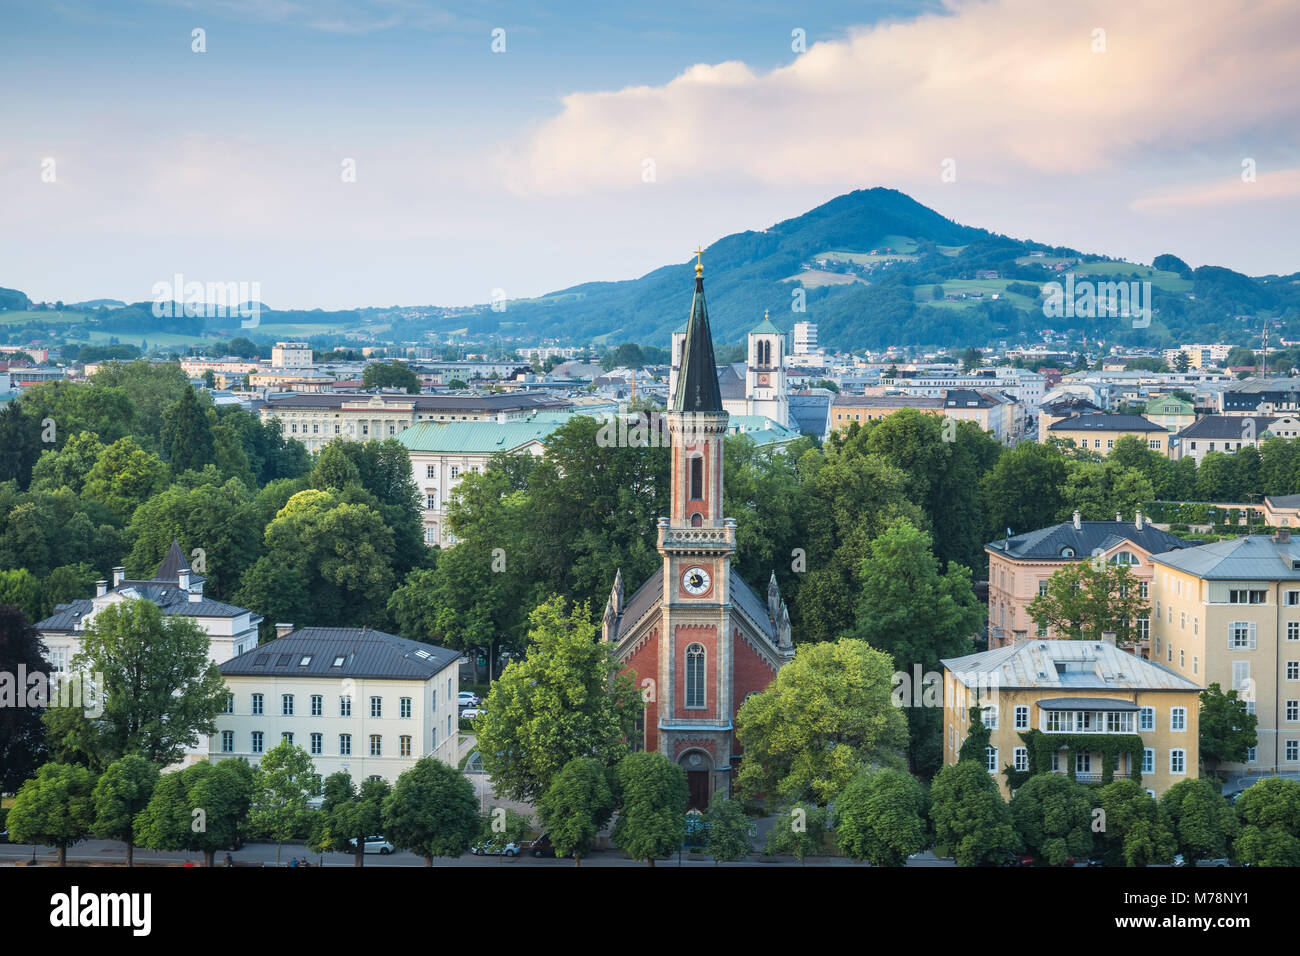 View of Protestant Church of Christ, Salzburg, Austria, Europe - Stock Image